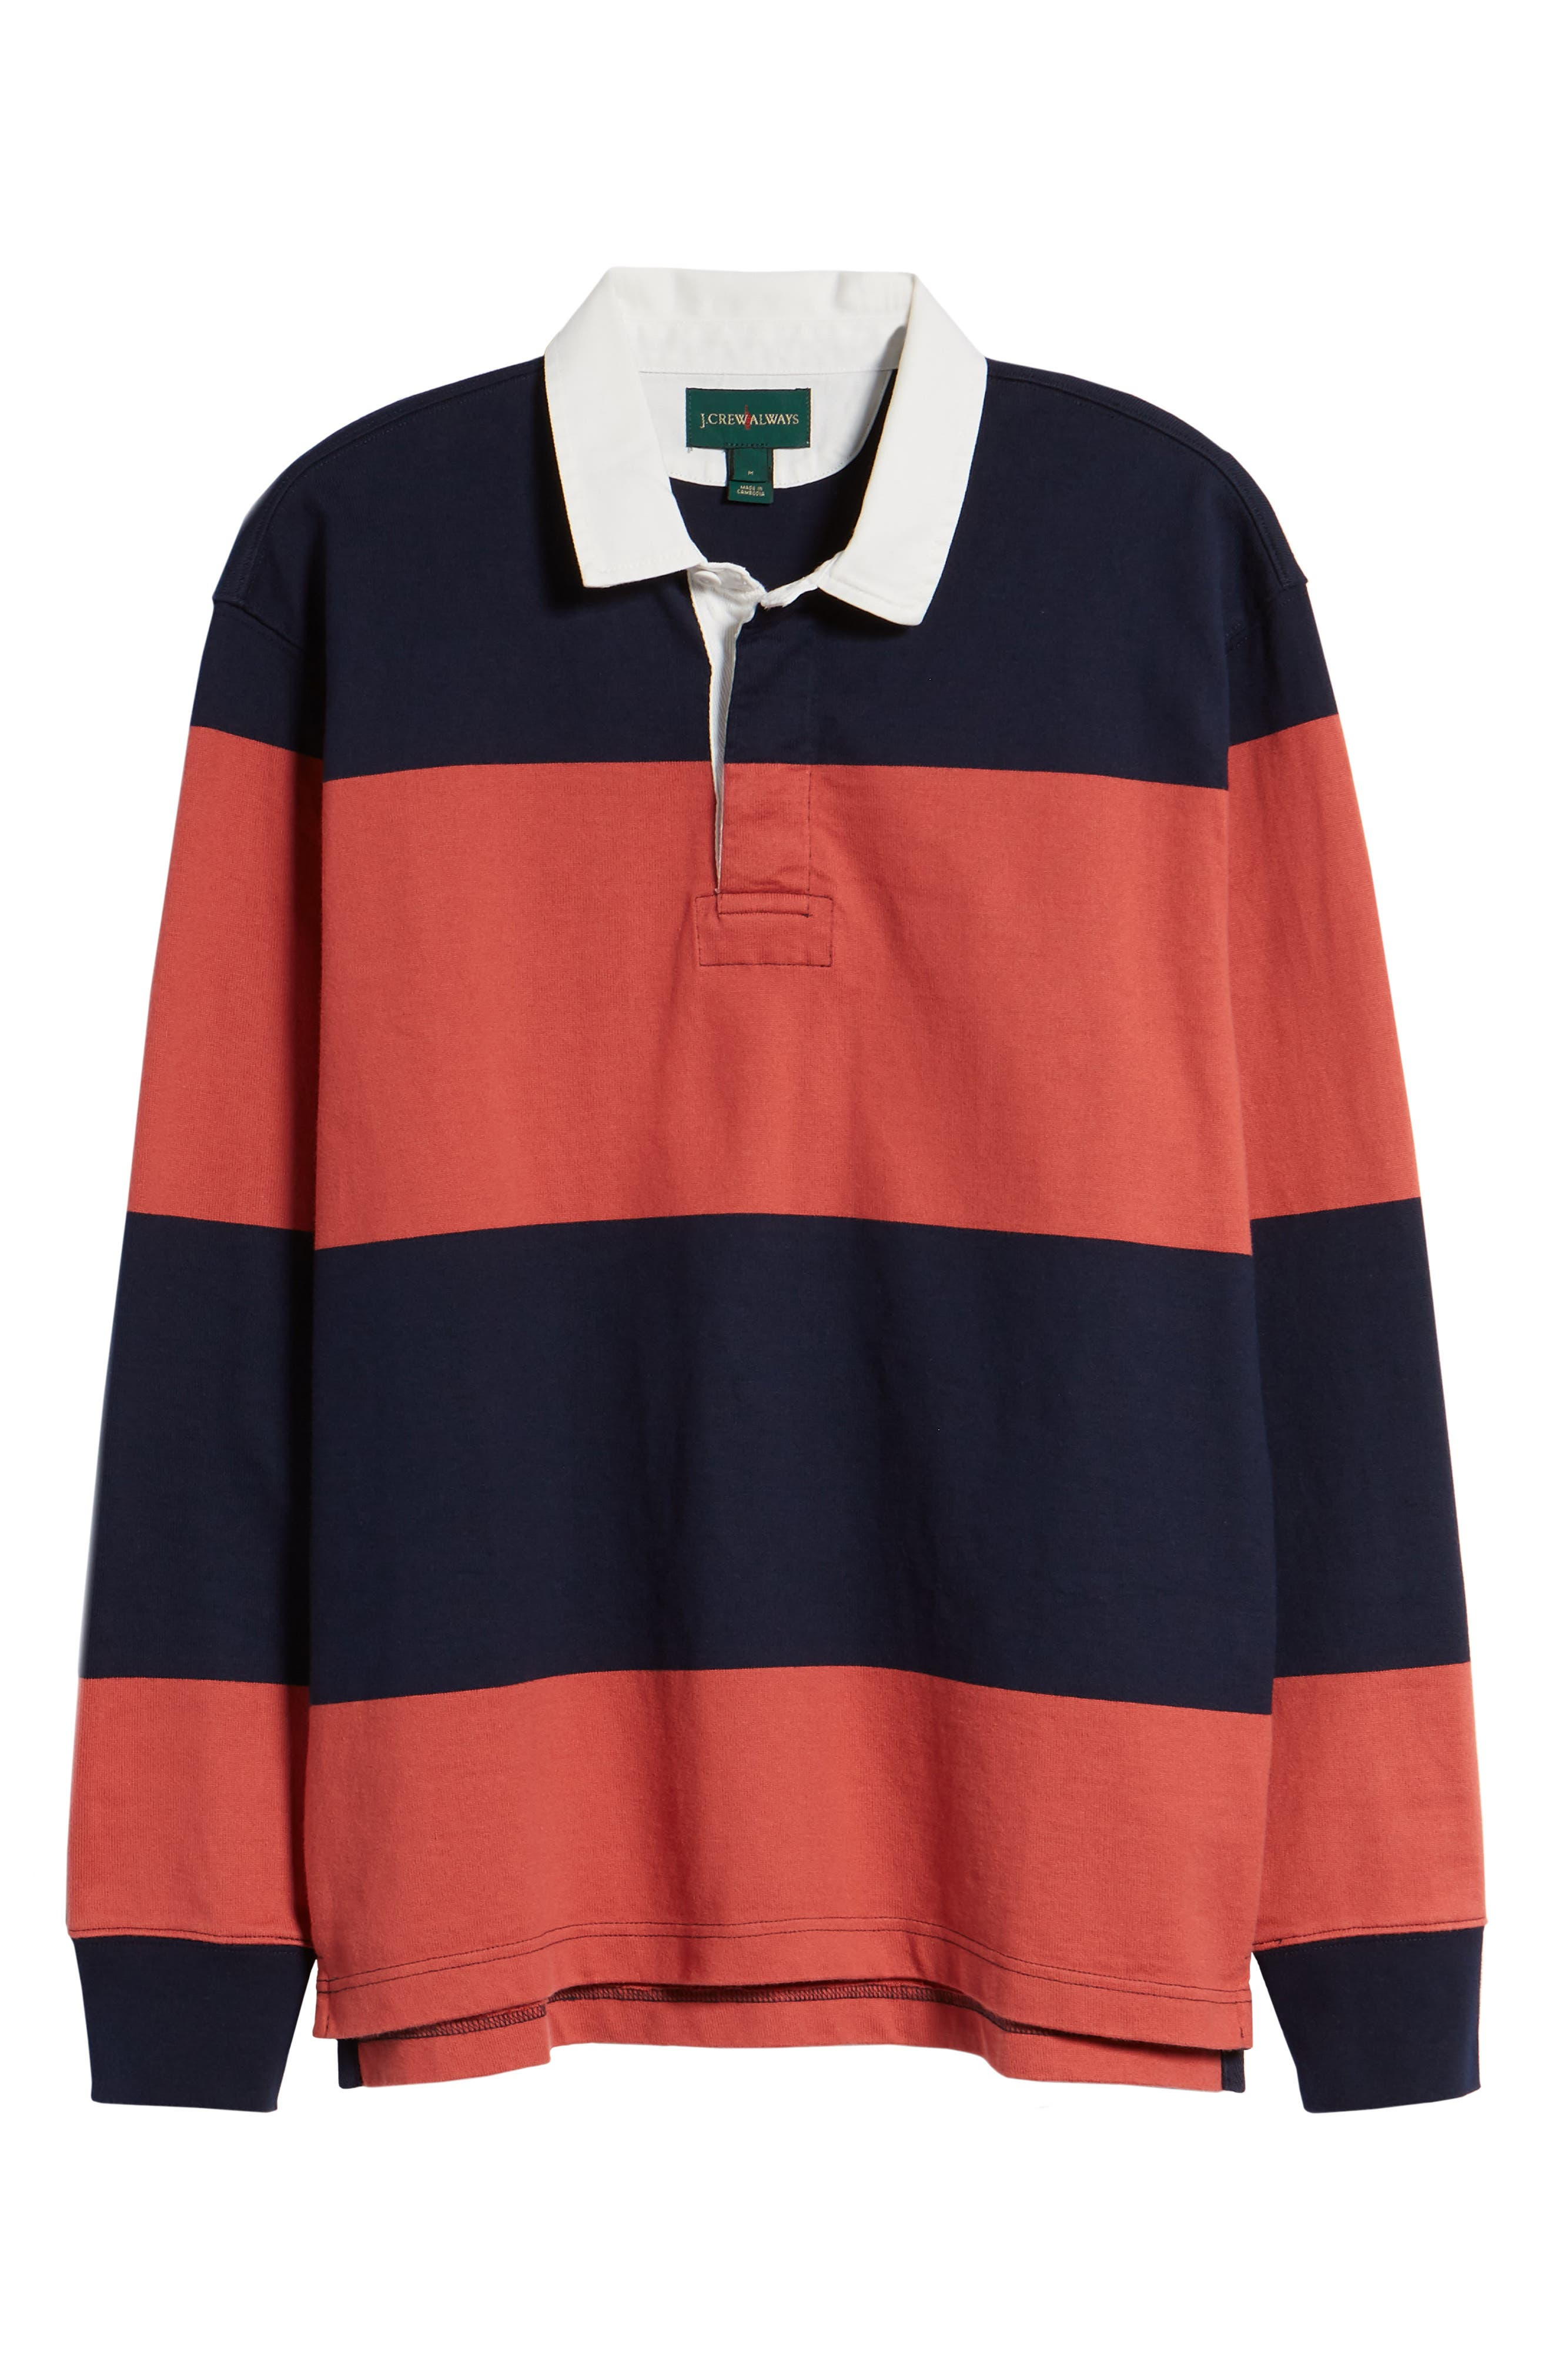 1984 Stripe Rugby Shirt,                             Alternate thumbnail 6, color,                             600